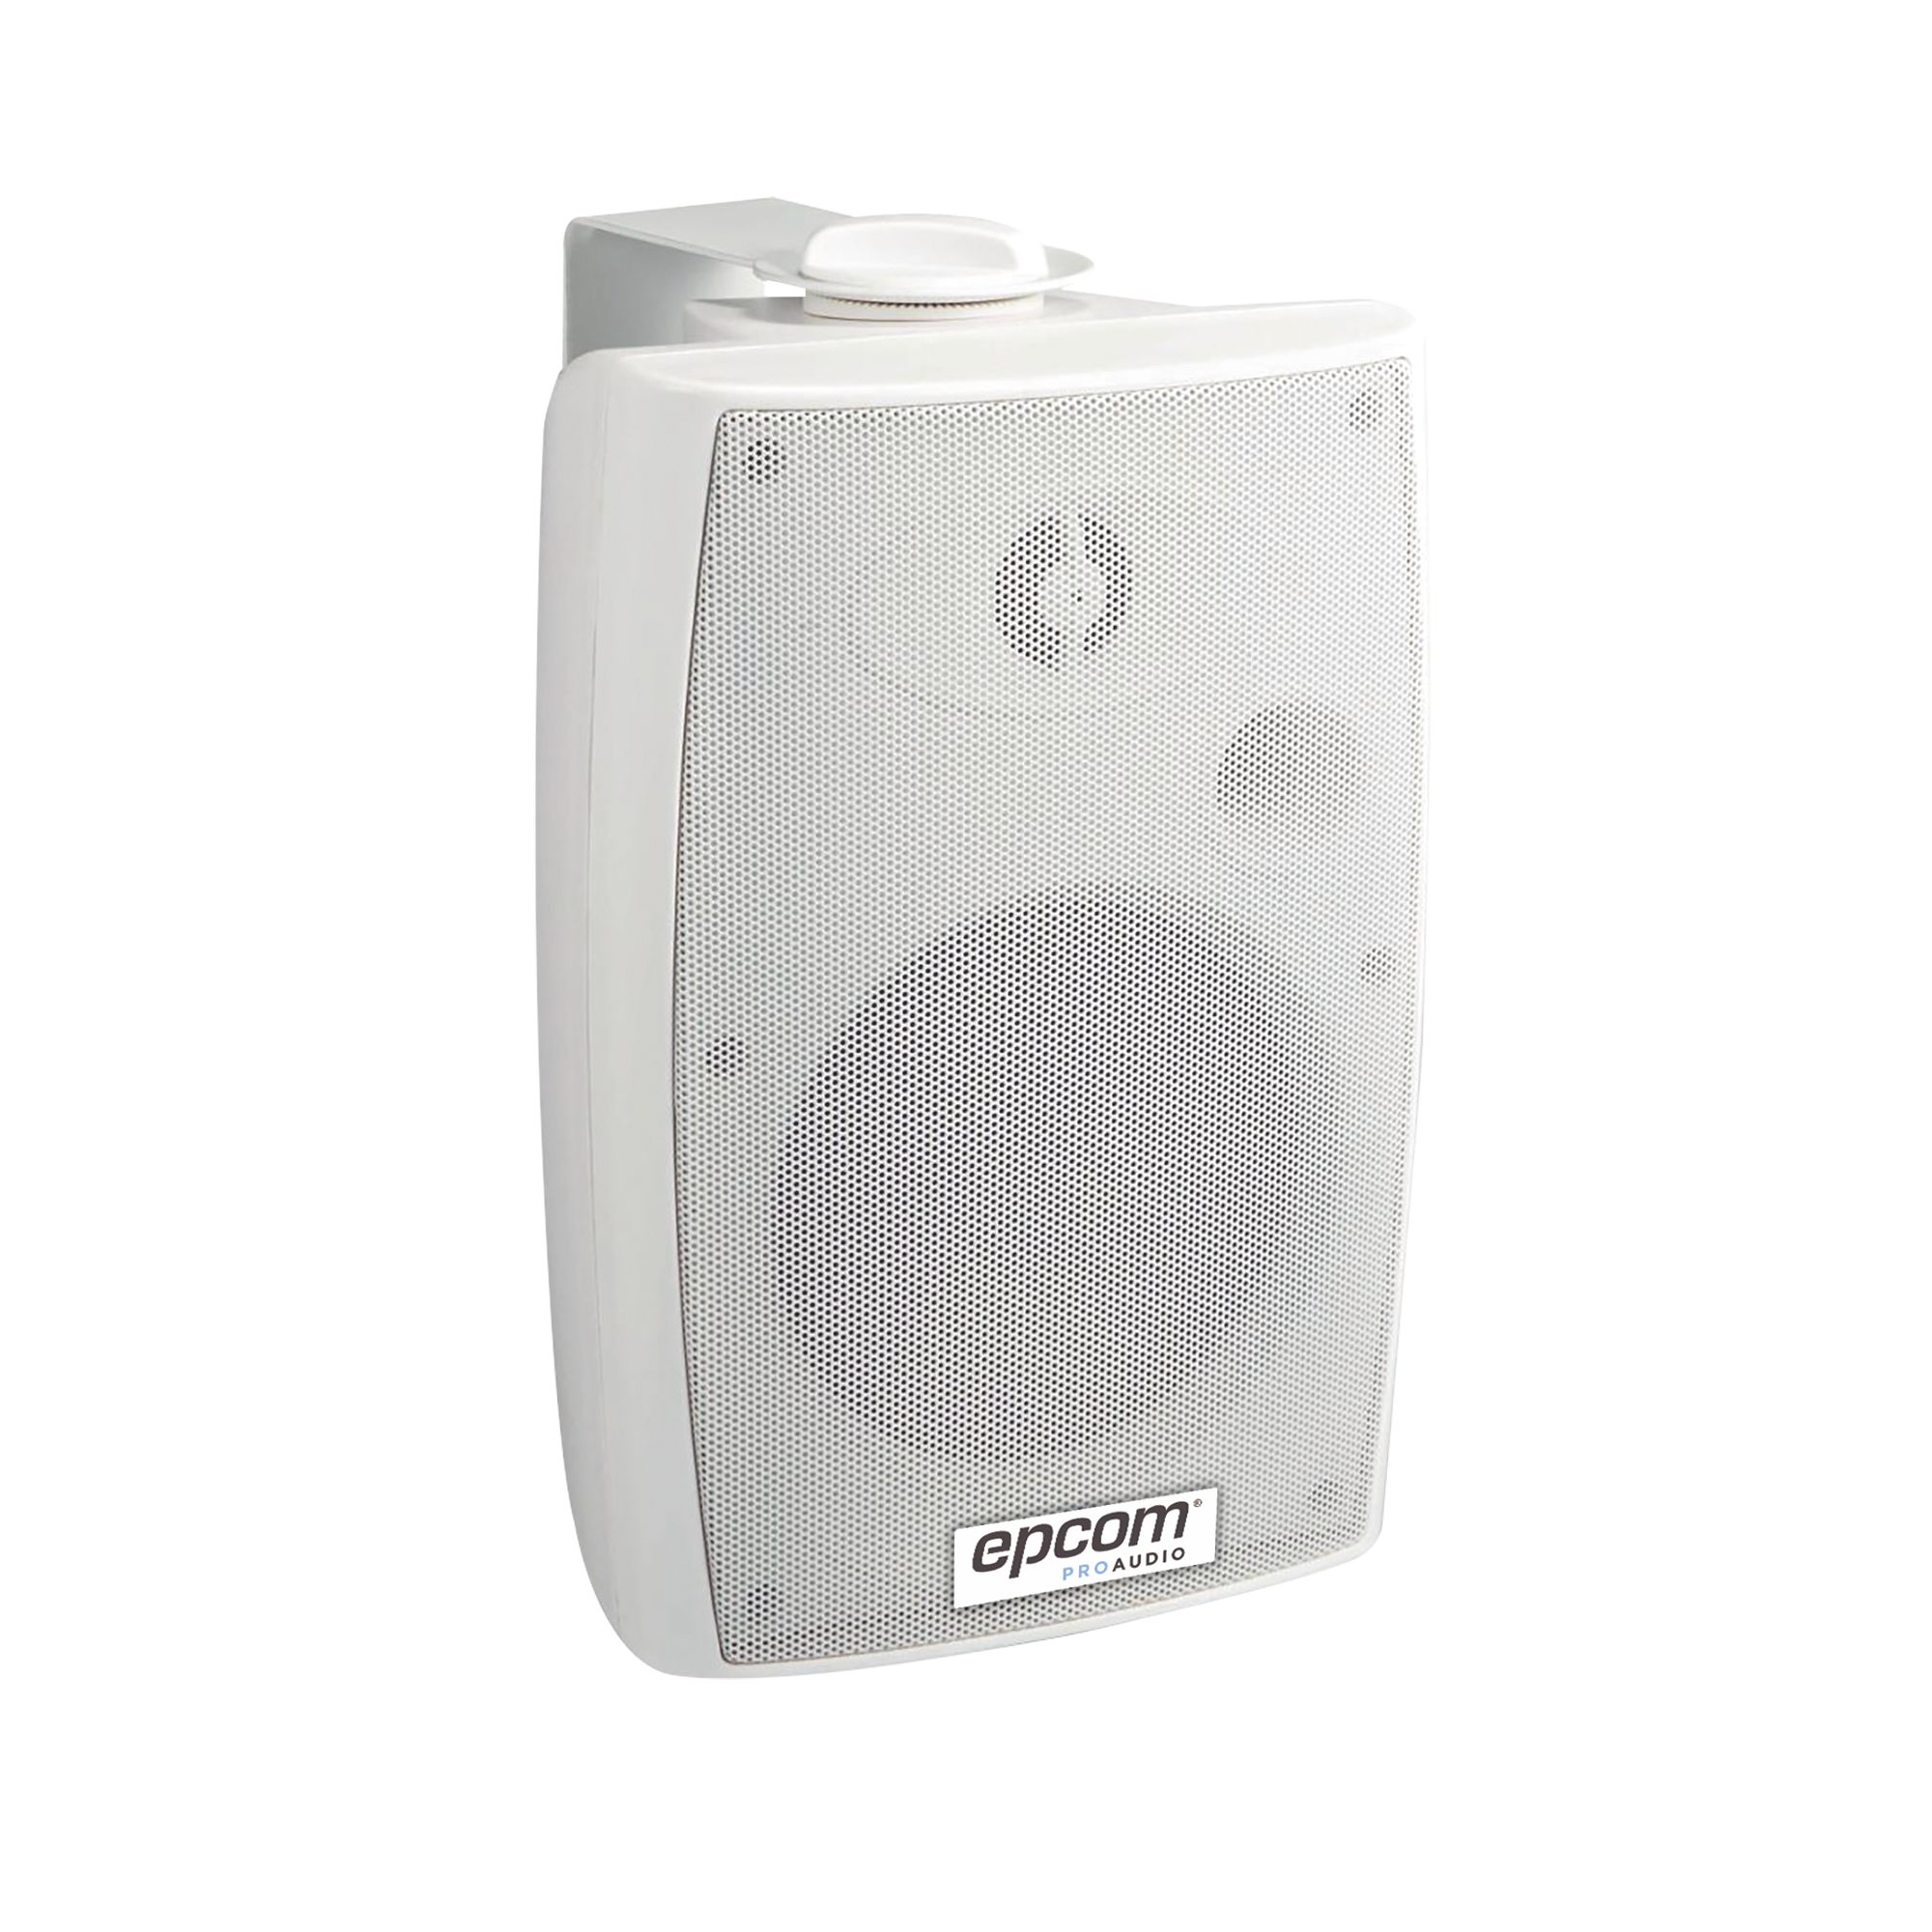 Altavoz de Montaje en Pared  4 + 1.5/ 2.5W-5W-10W-20W/ 100V+8ohm/ Material ABS/ Reja y Bracket de Metal/ Color Blanco